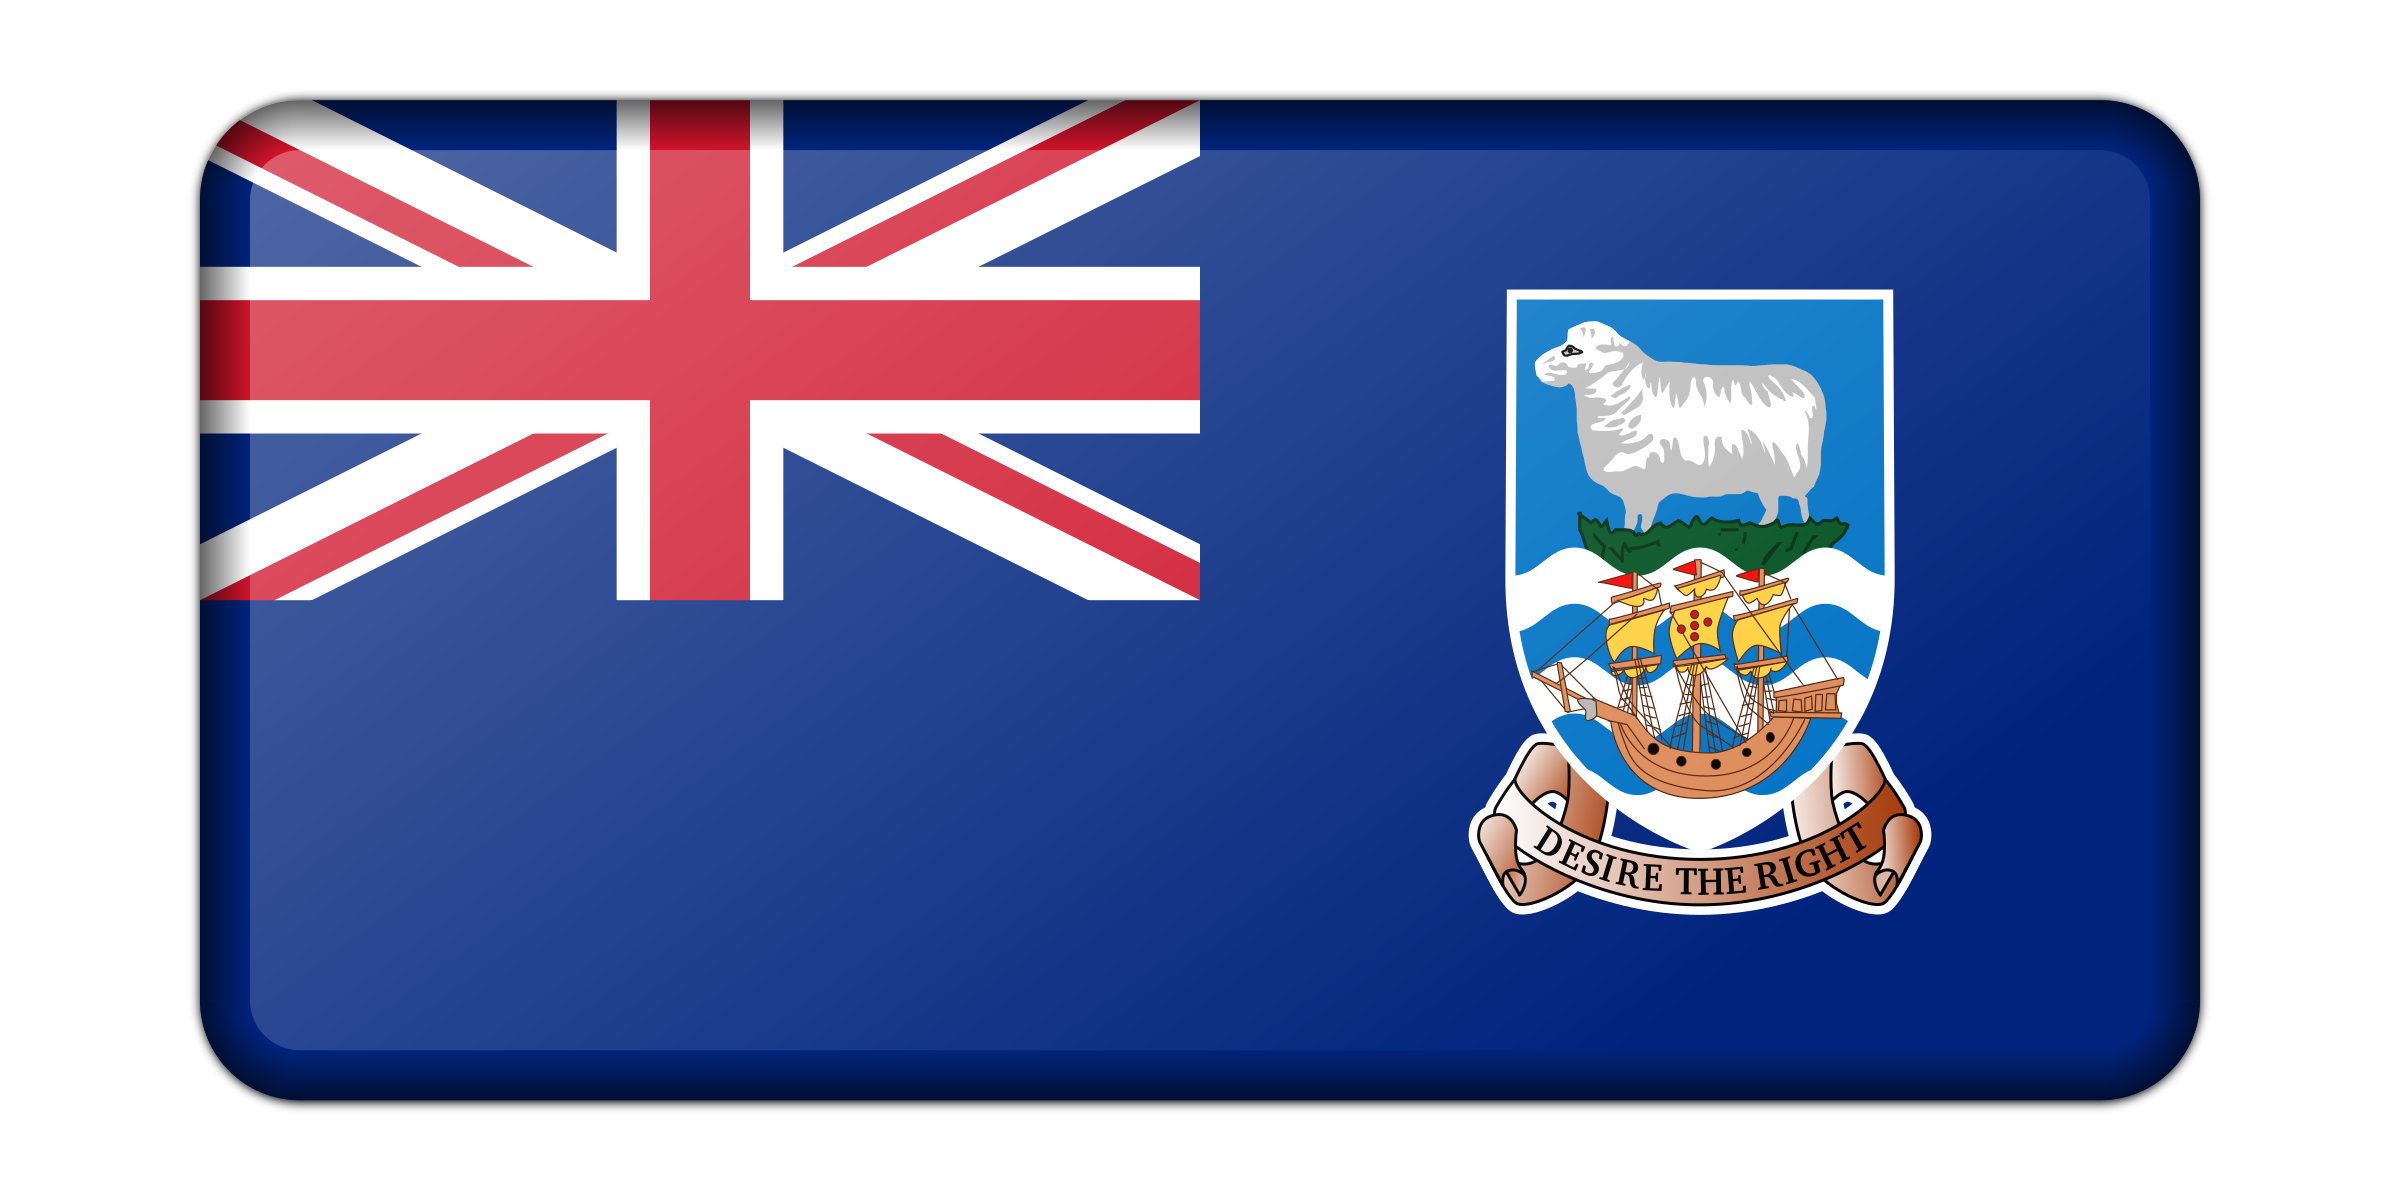 Falkland Islands clipart #6, Download drawings